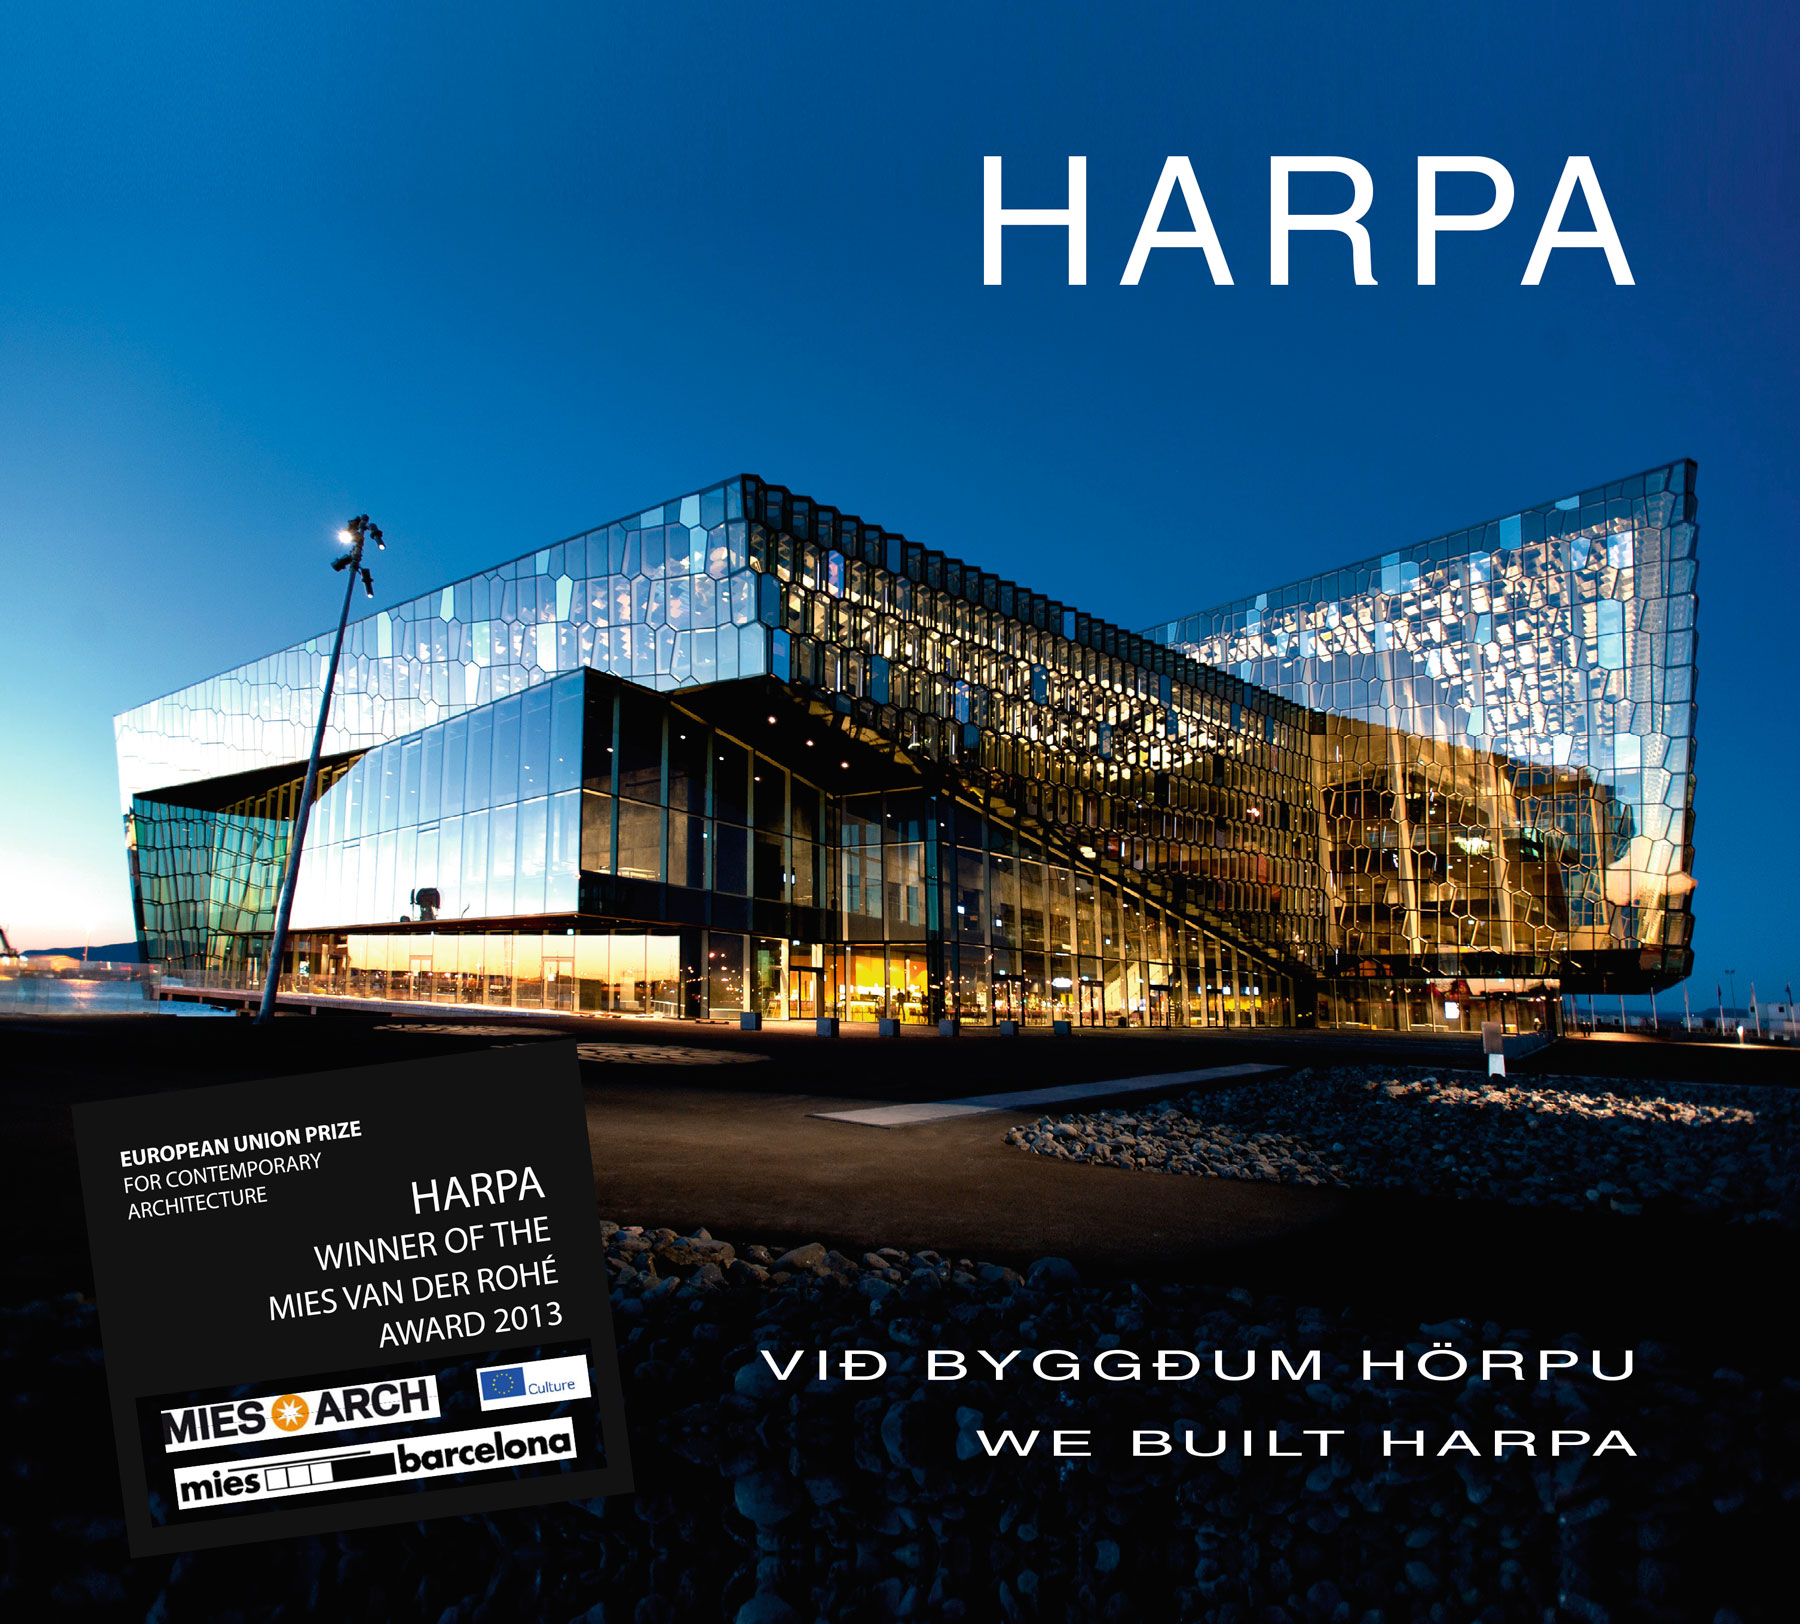 We built Harpa